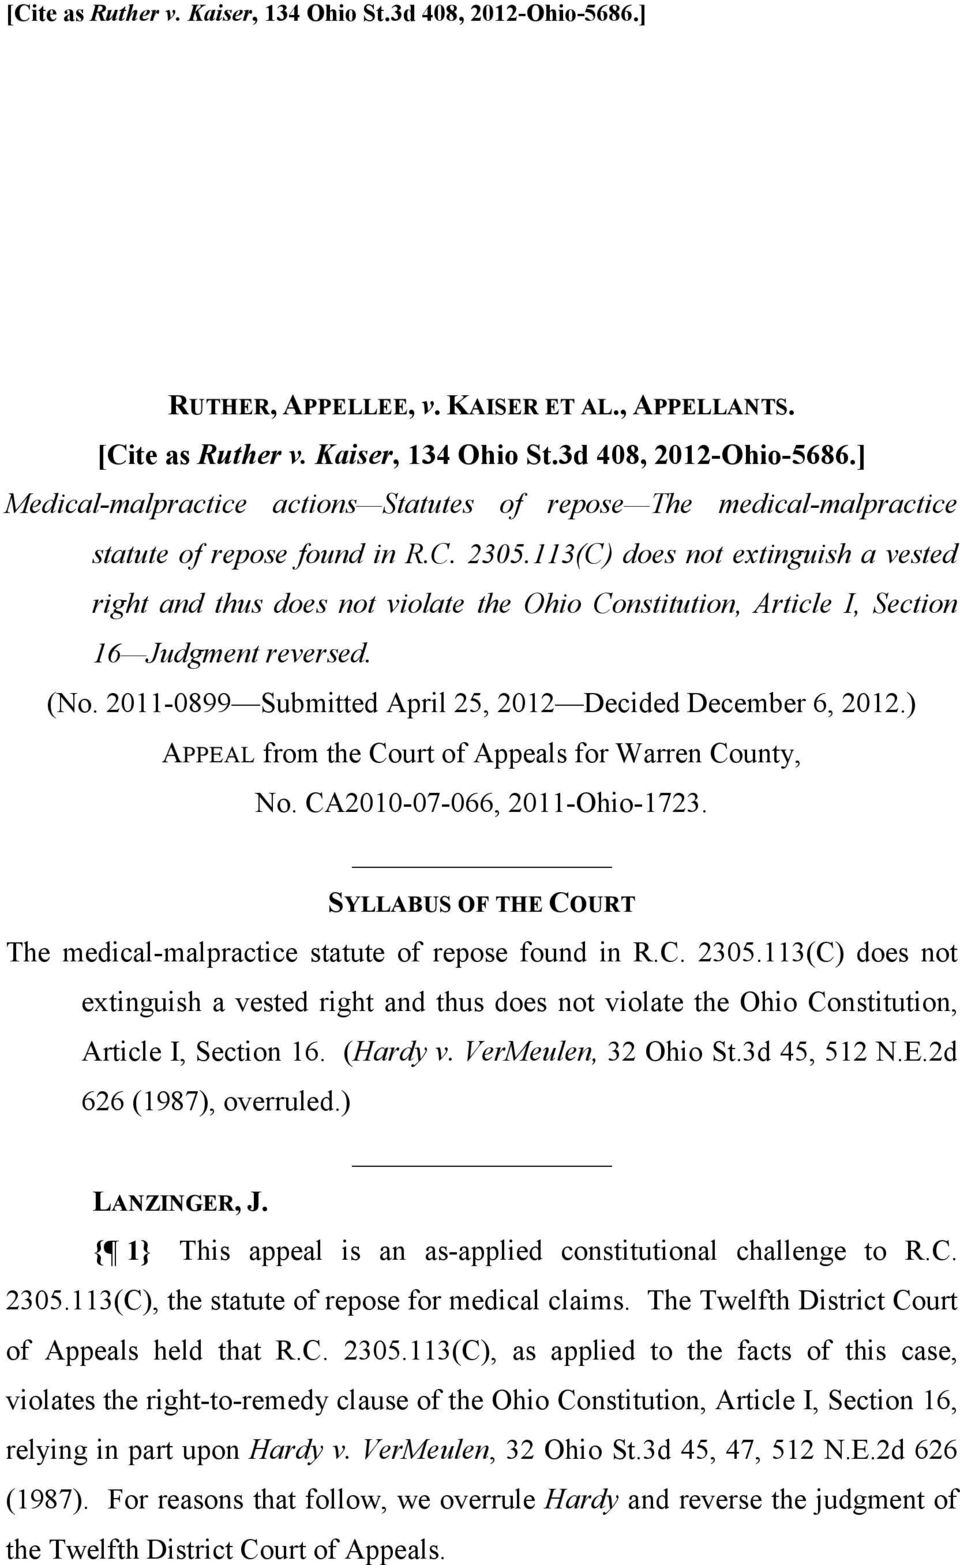 2011-0899 Submitted April 25, 2012 Decided December 6, 2012.) APPEAL from the Court of Appeals for Warren County, No. CA2010-07-066, 2011-Ohio-1723.